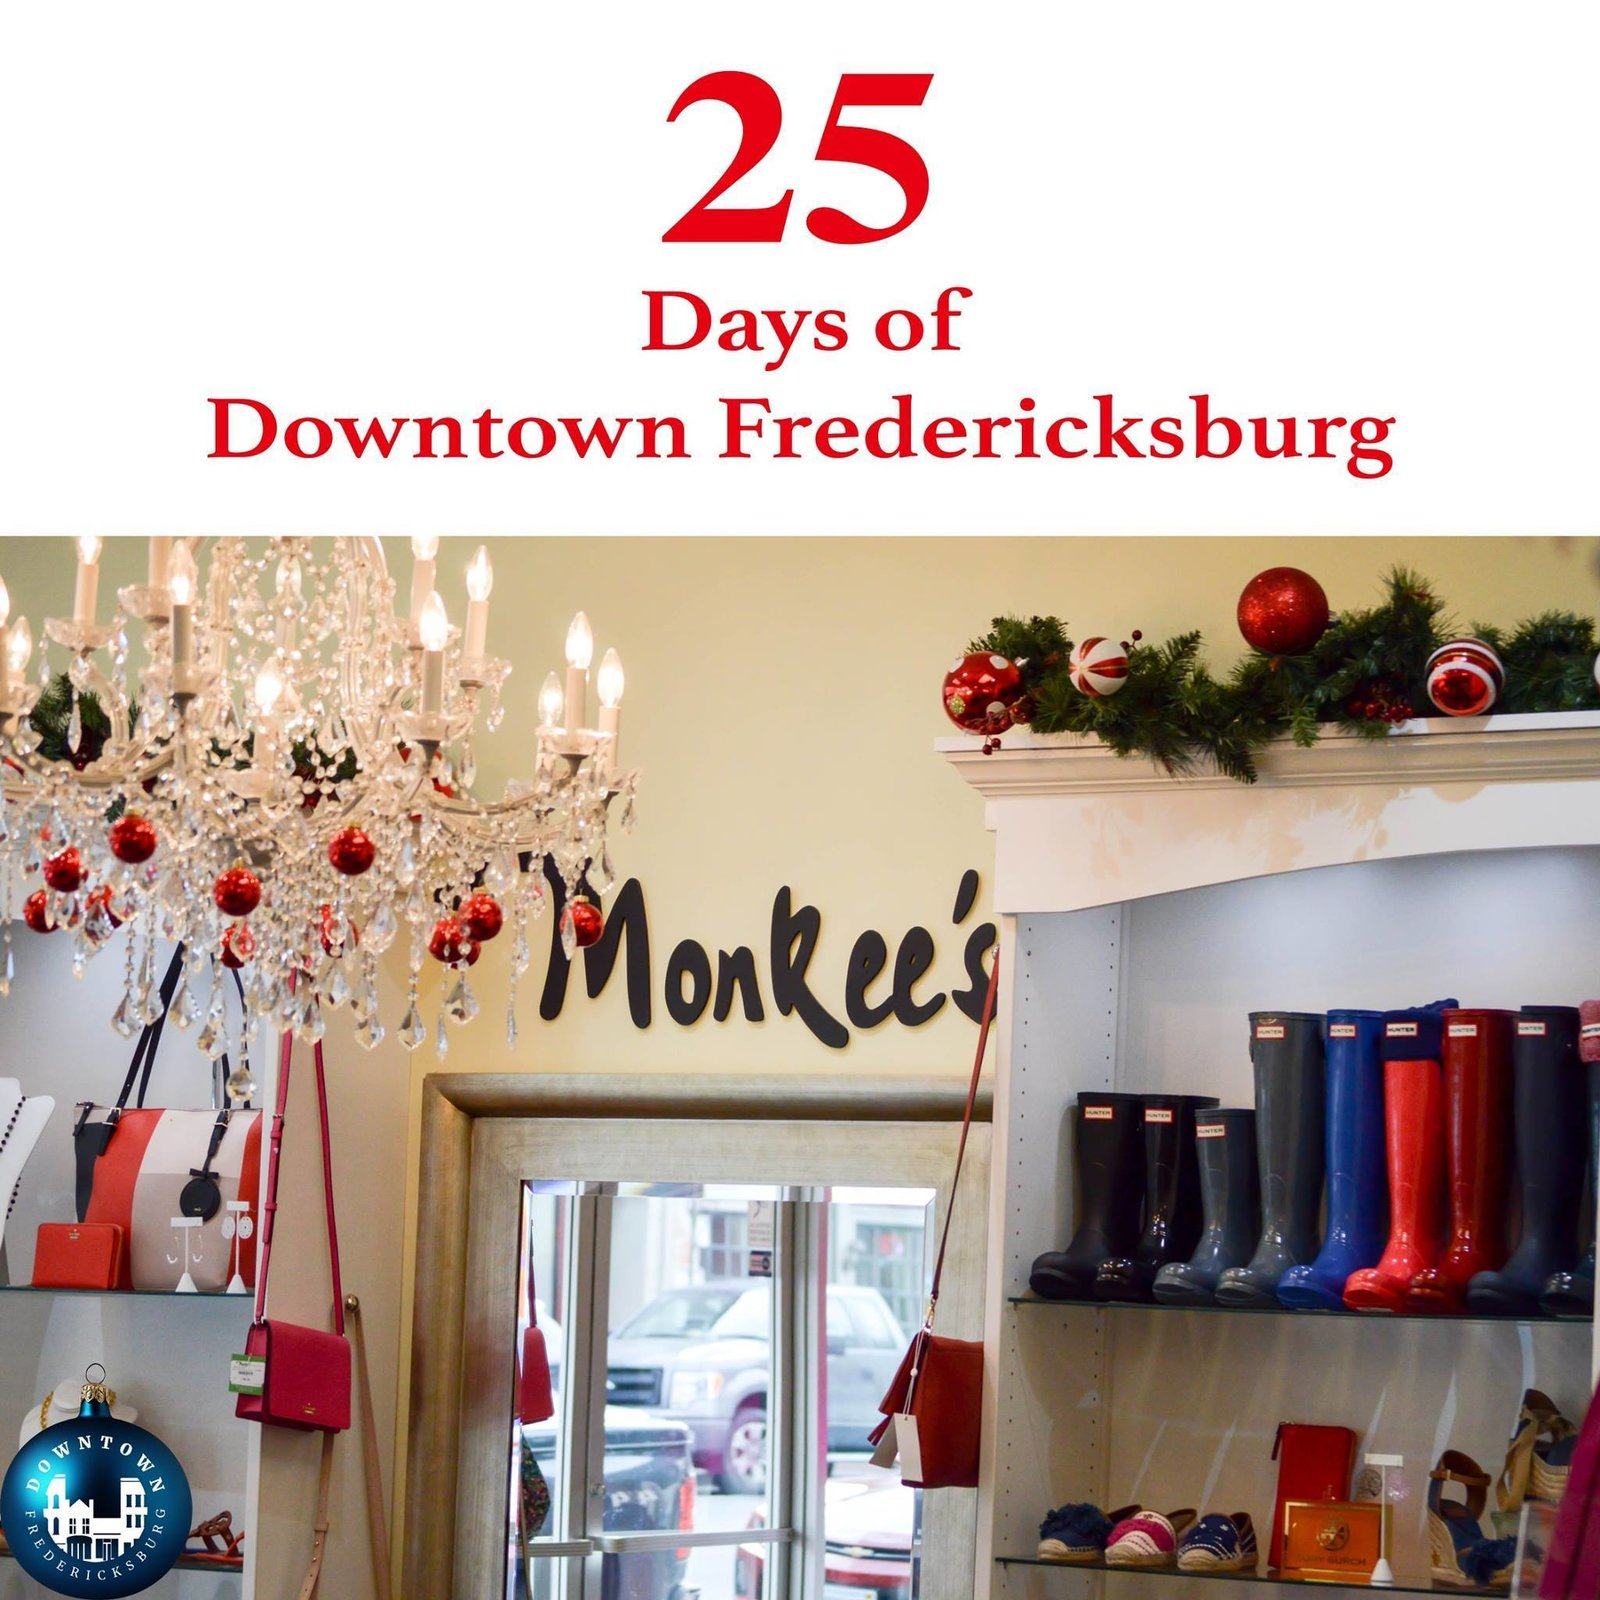 Gift Twenty-four Hunter, Barbour, and Lilly make the season bright! If you are last minute holiday shopping today, Monkee's of Fredericksburg has you covered. https://www.facebook.com/DowntownFredericksburg/  25 Days of Downtown Fredericksburg by Downtown Fredericksburg